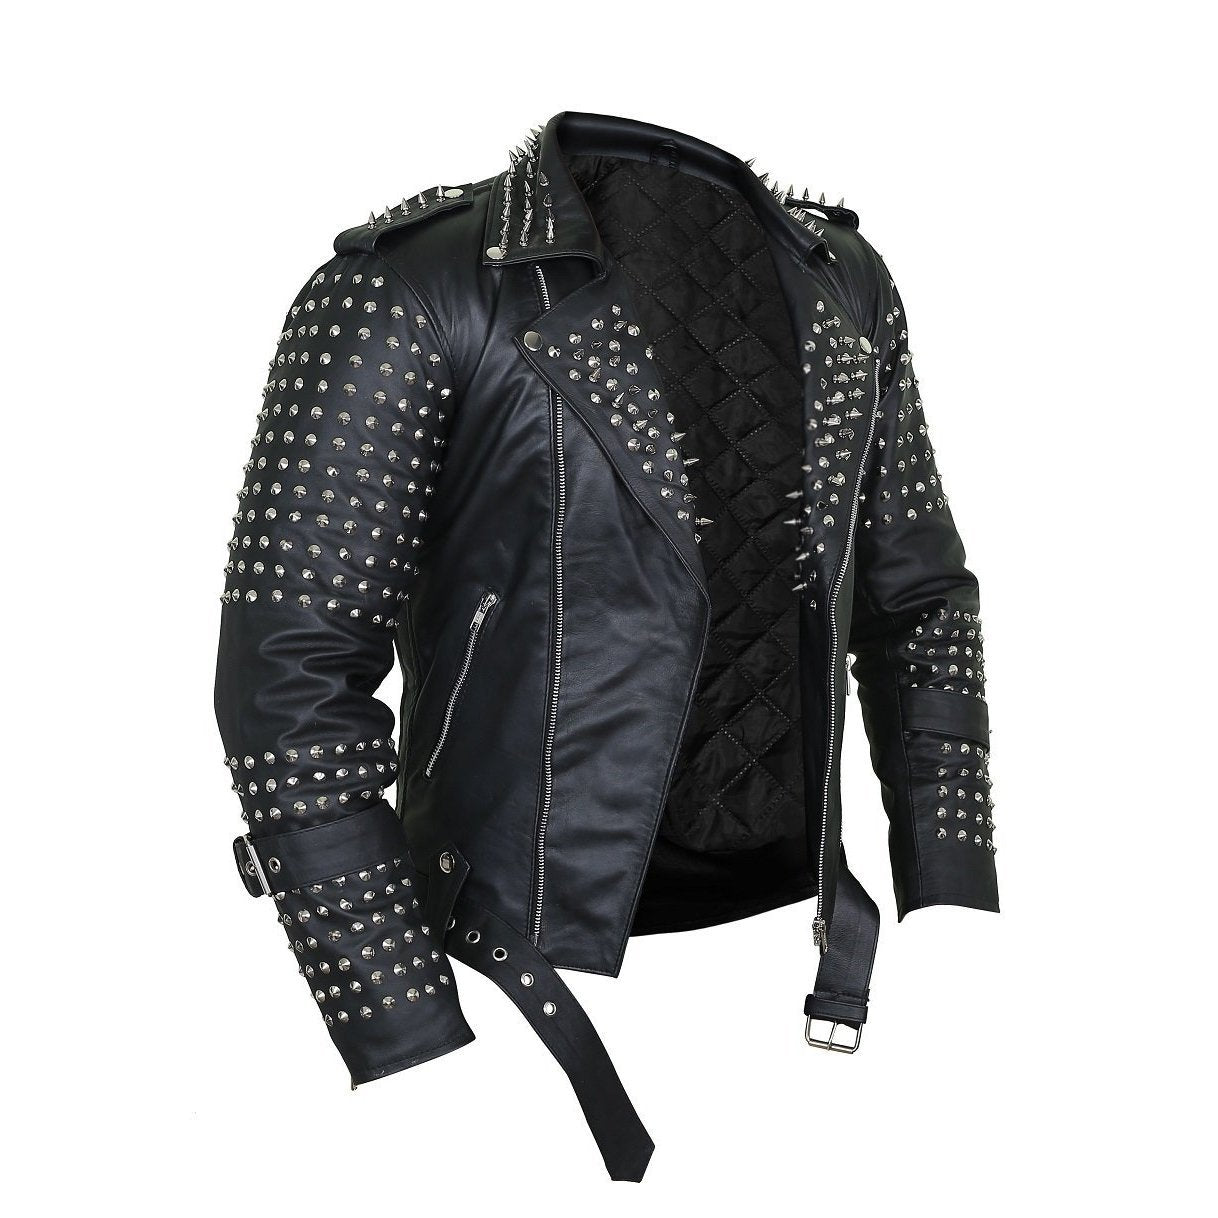 Black Punk Leather Jacket with Spikes Decor